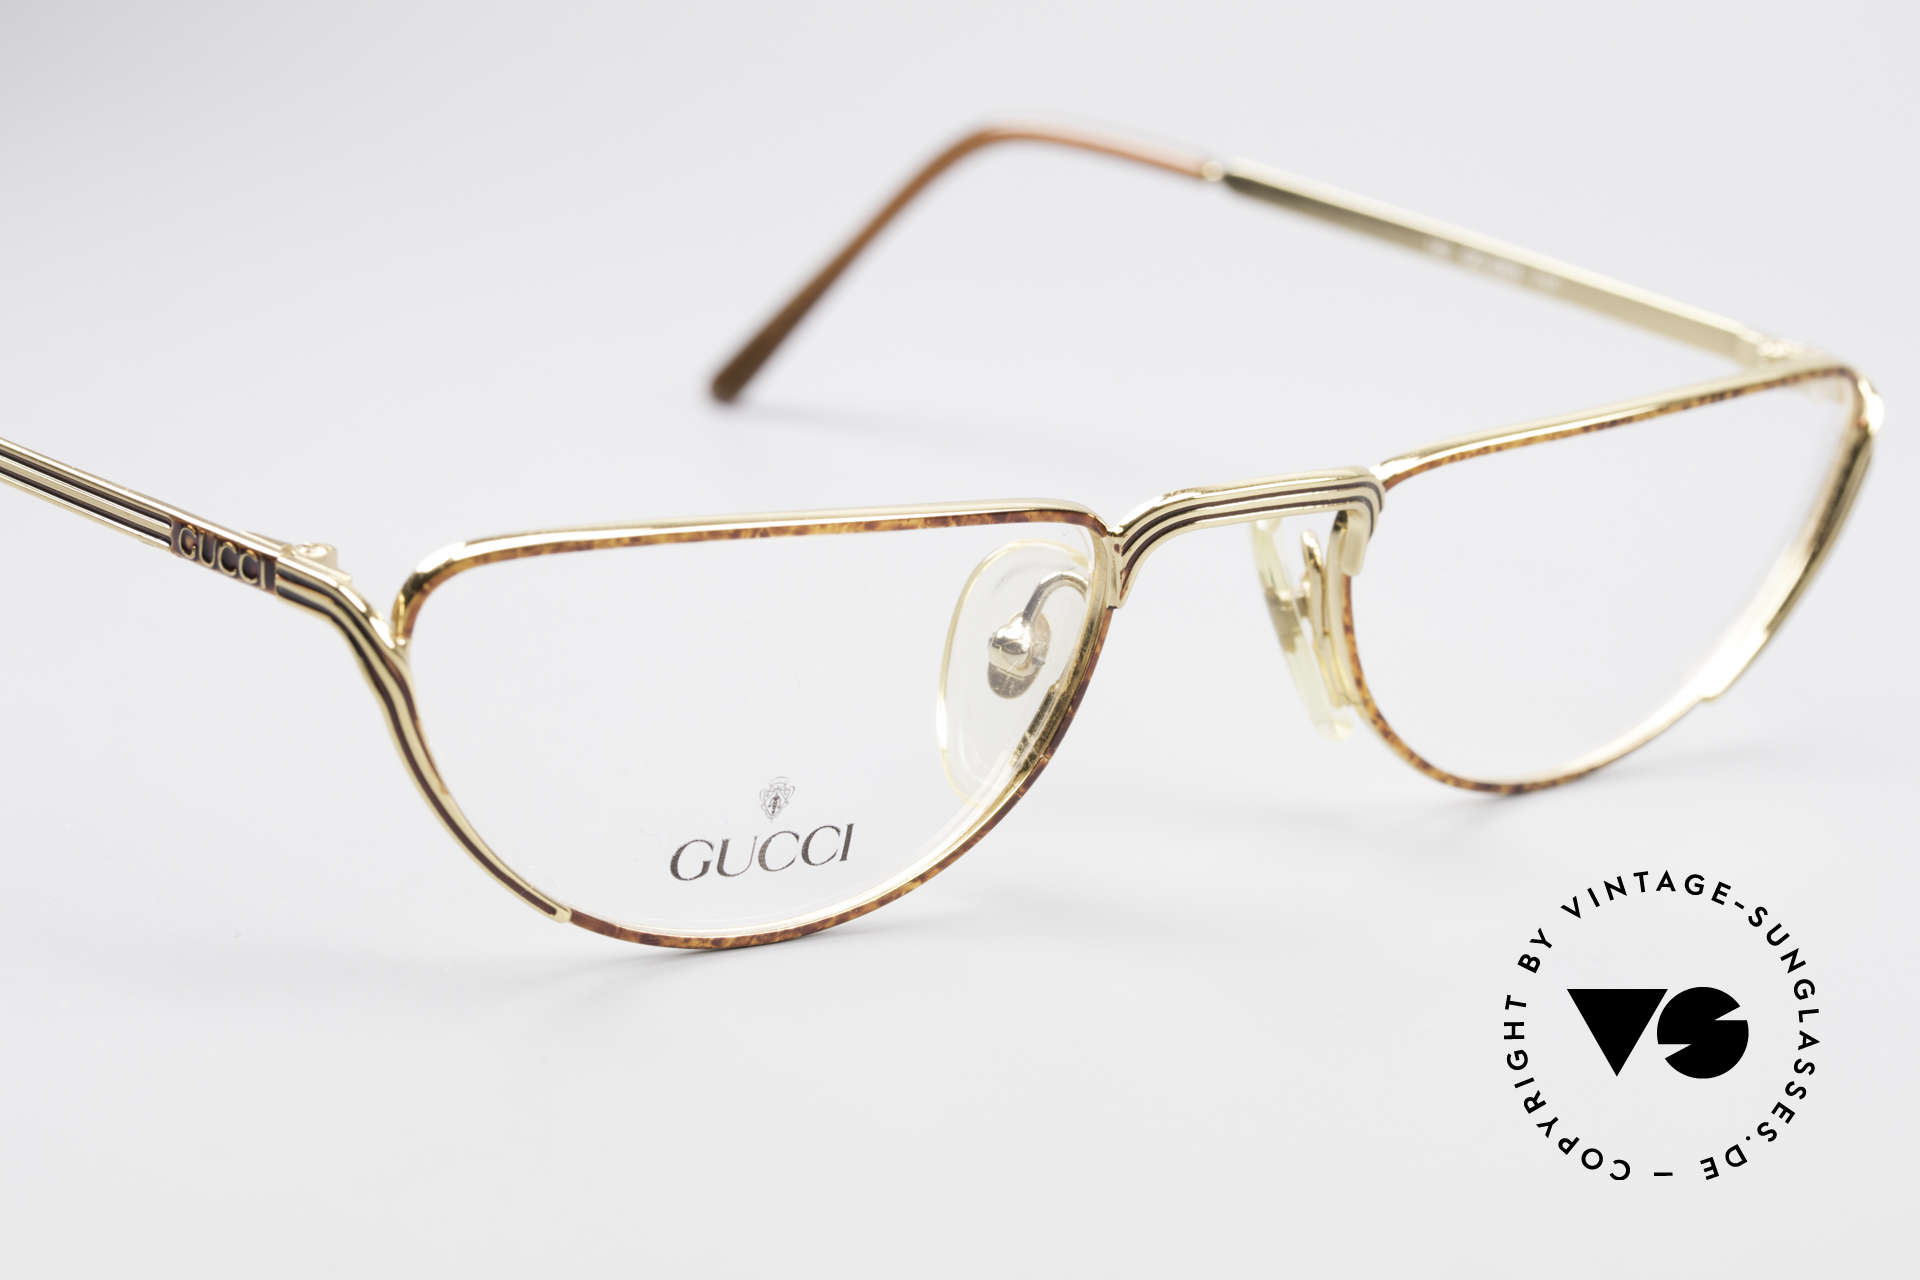 Gucci 2203 Vintage Reading Glasses 80's, unworn (like all our vintage GUCCI eyeglasses), Made for Men and Women